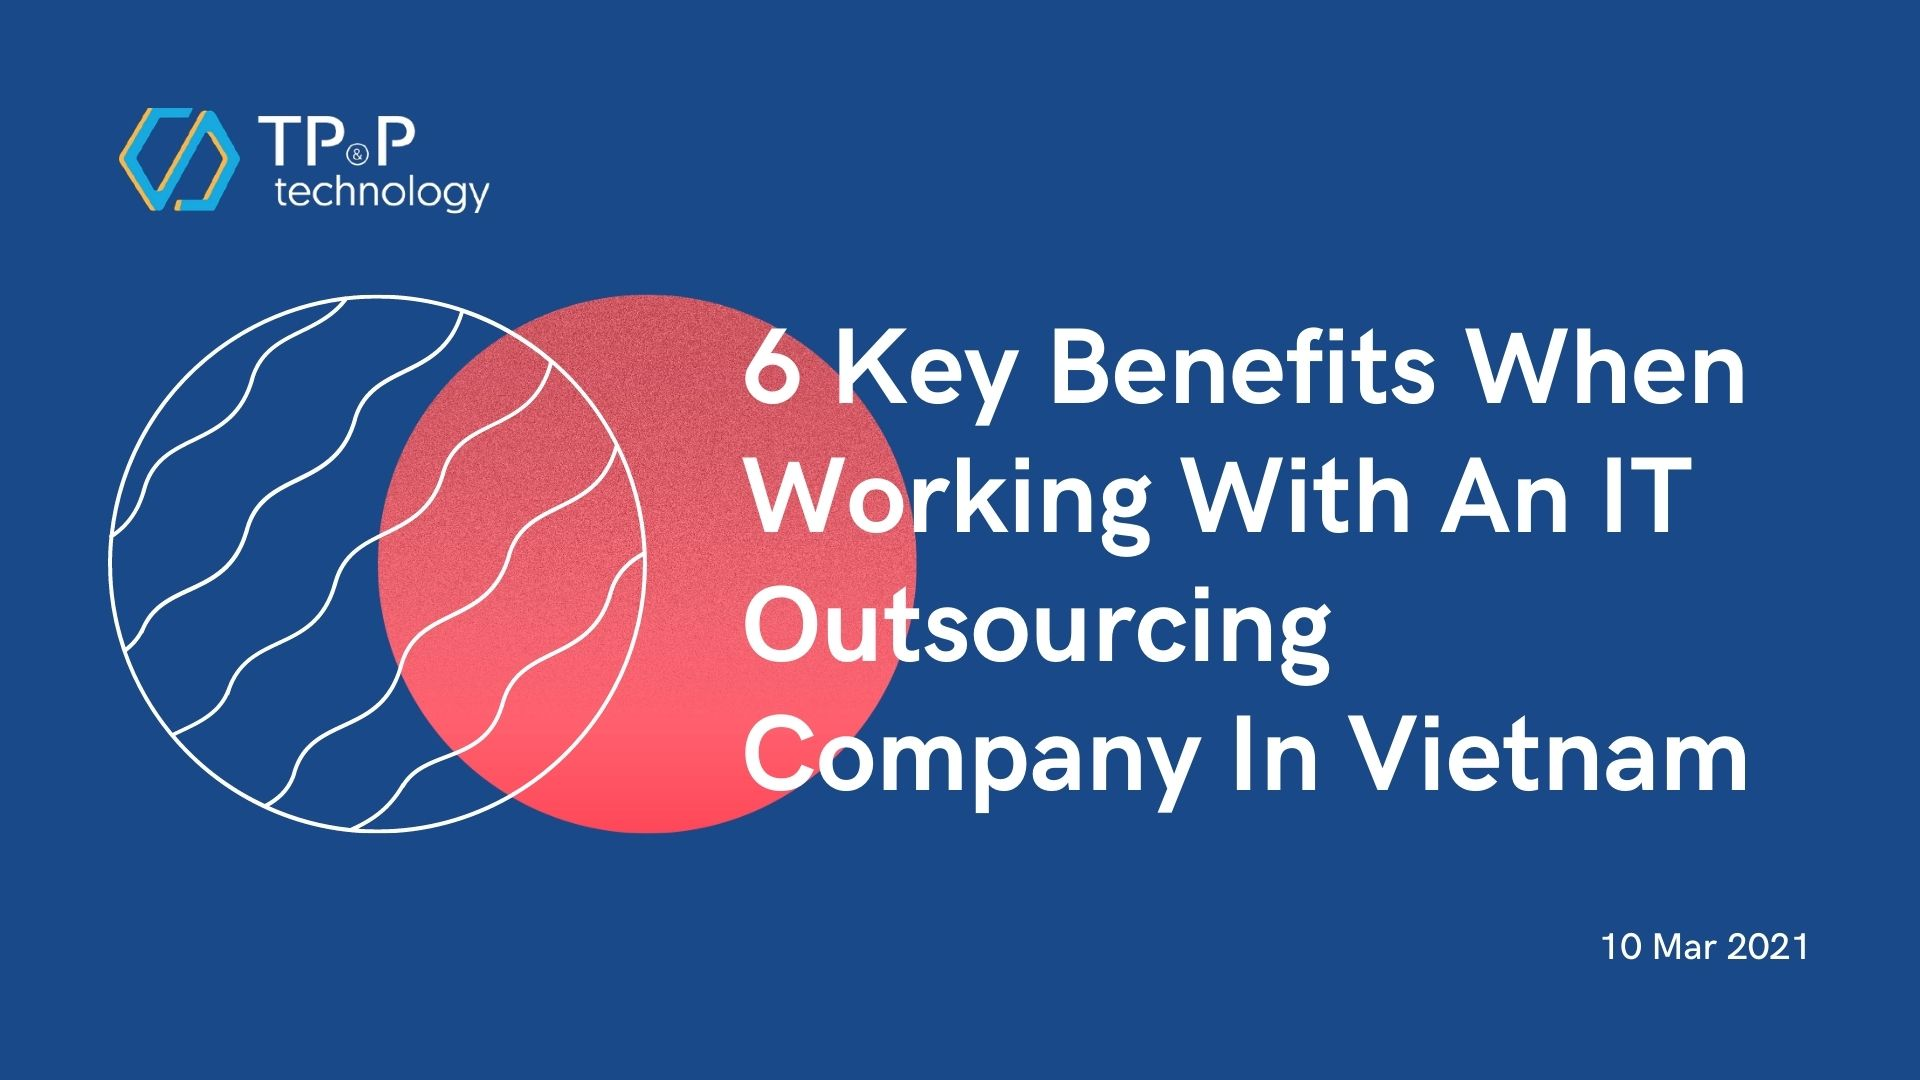 6 Key Benefits When Working With An IT Outsourcing Company In Vietnam